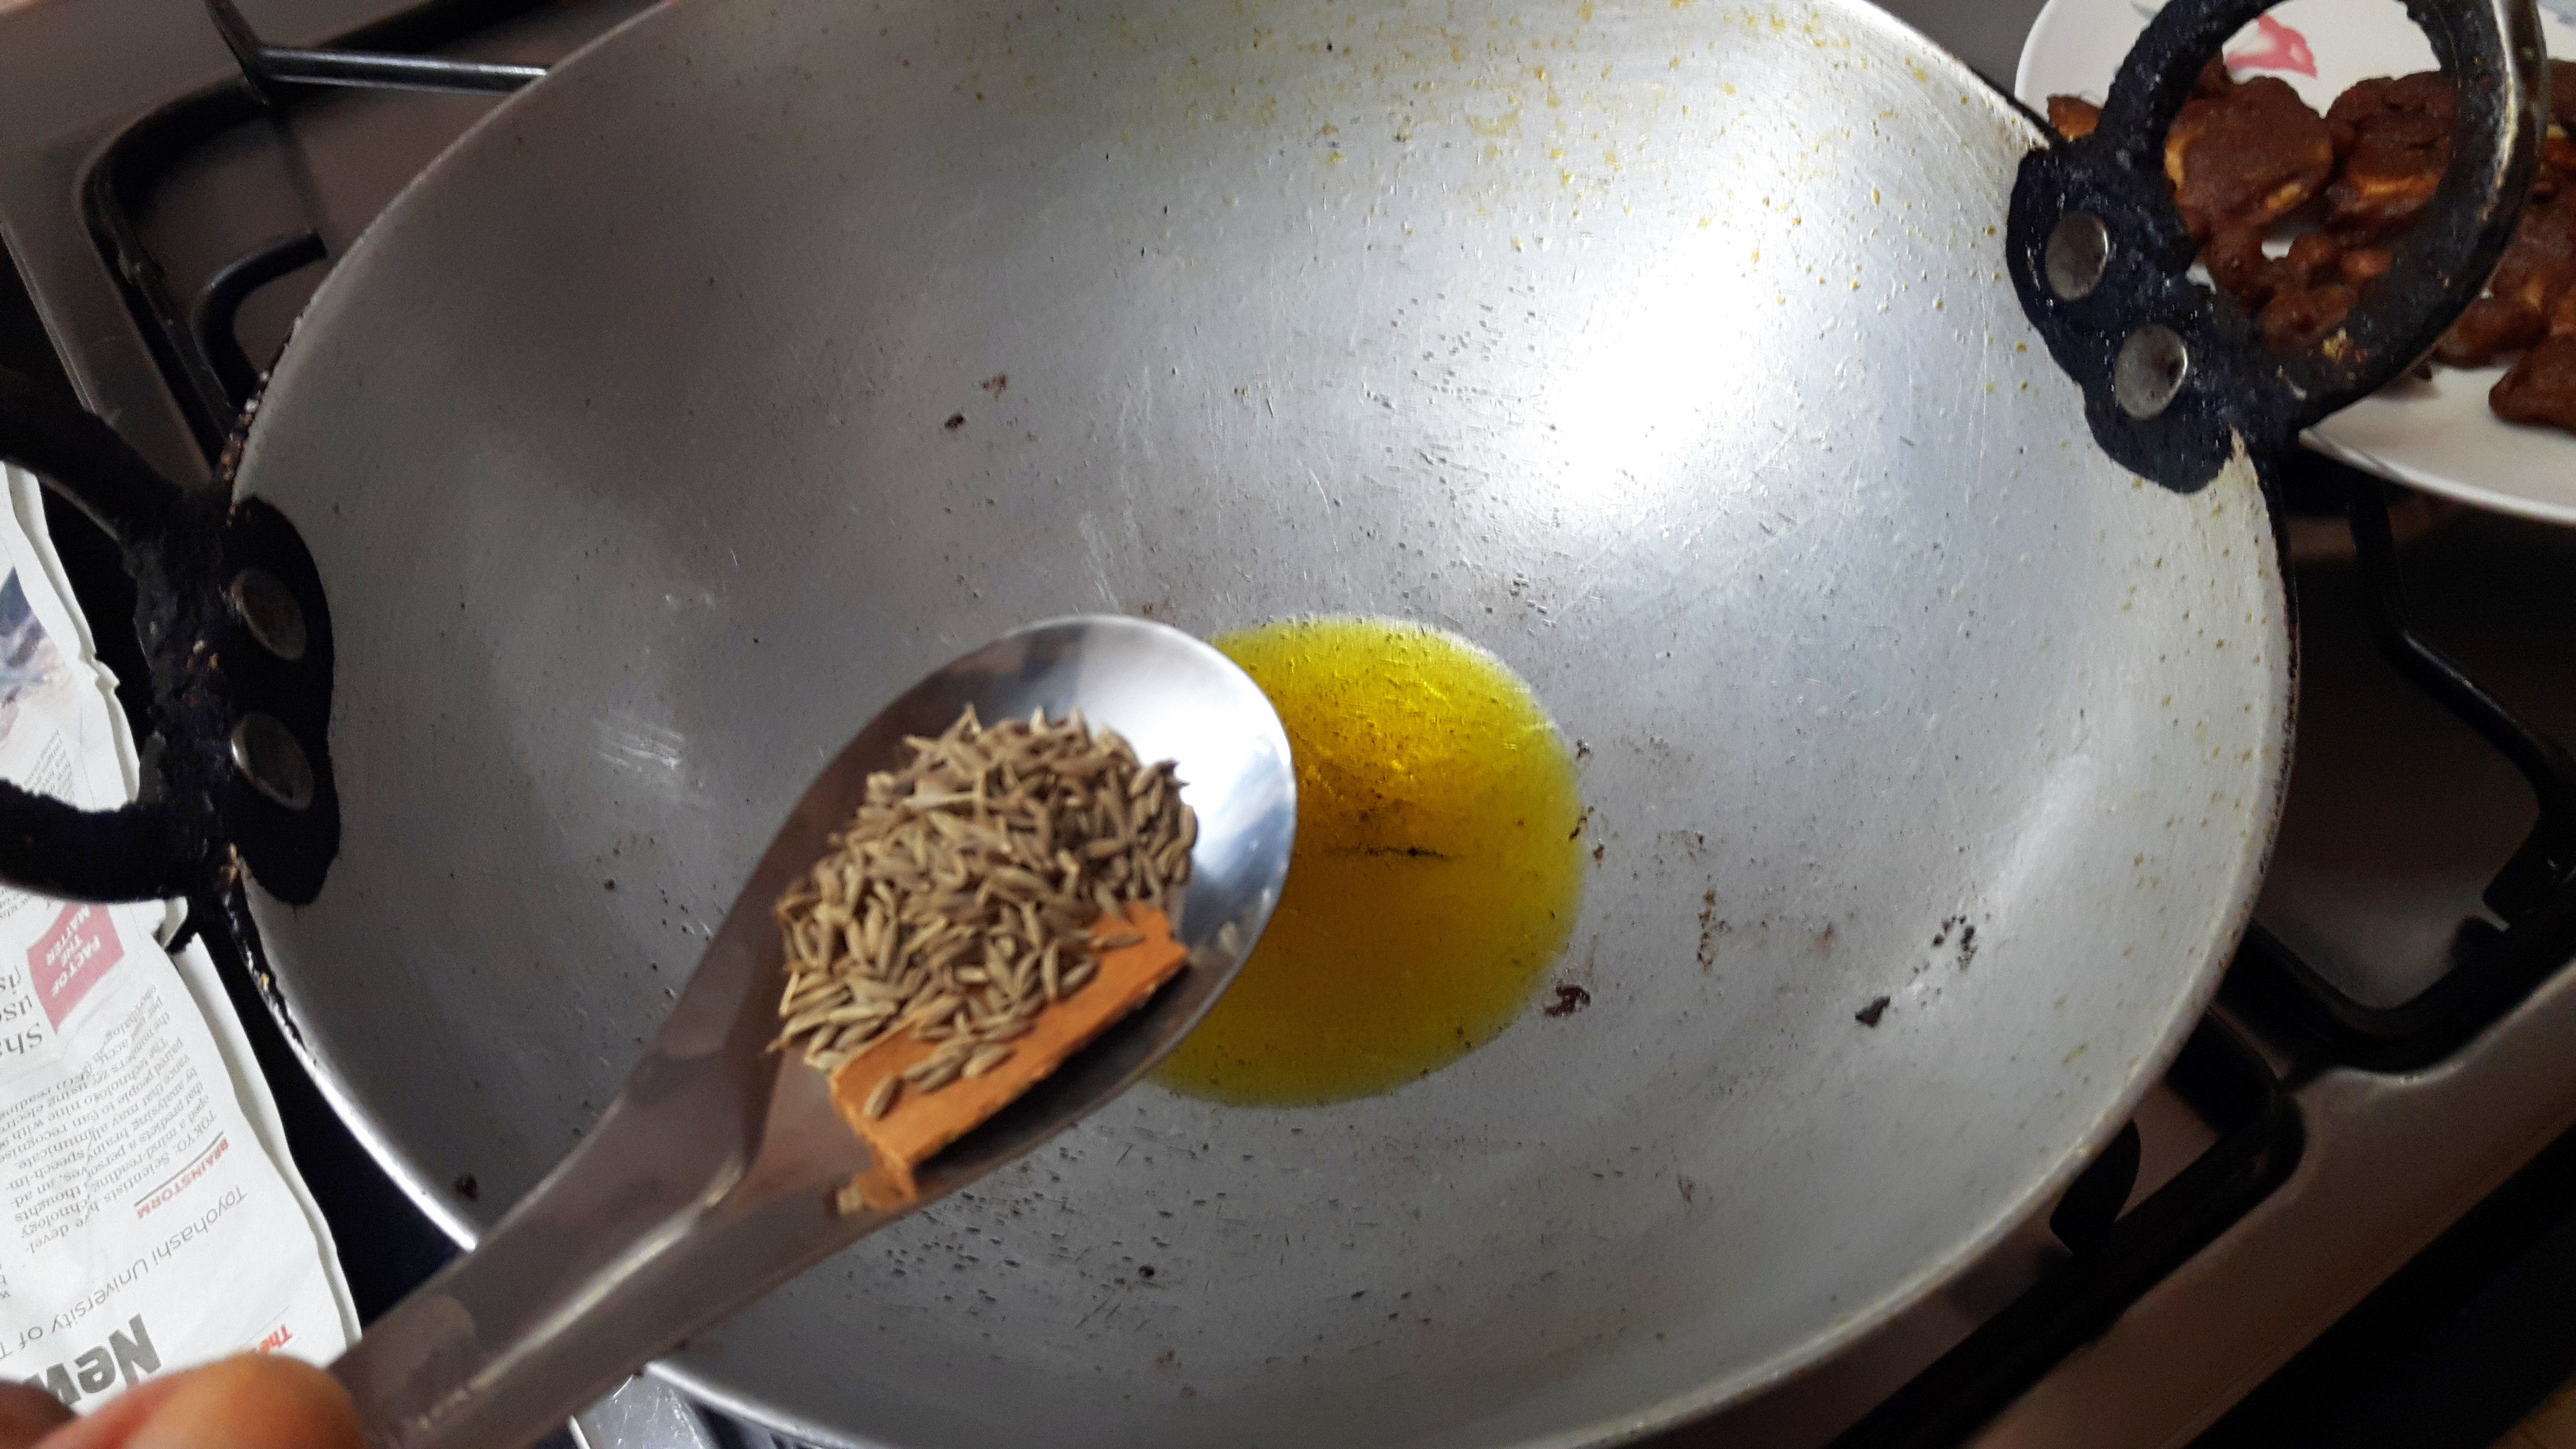 put 1 teaspoon of cumin and cinnamon